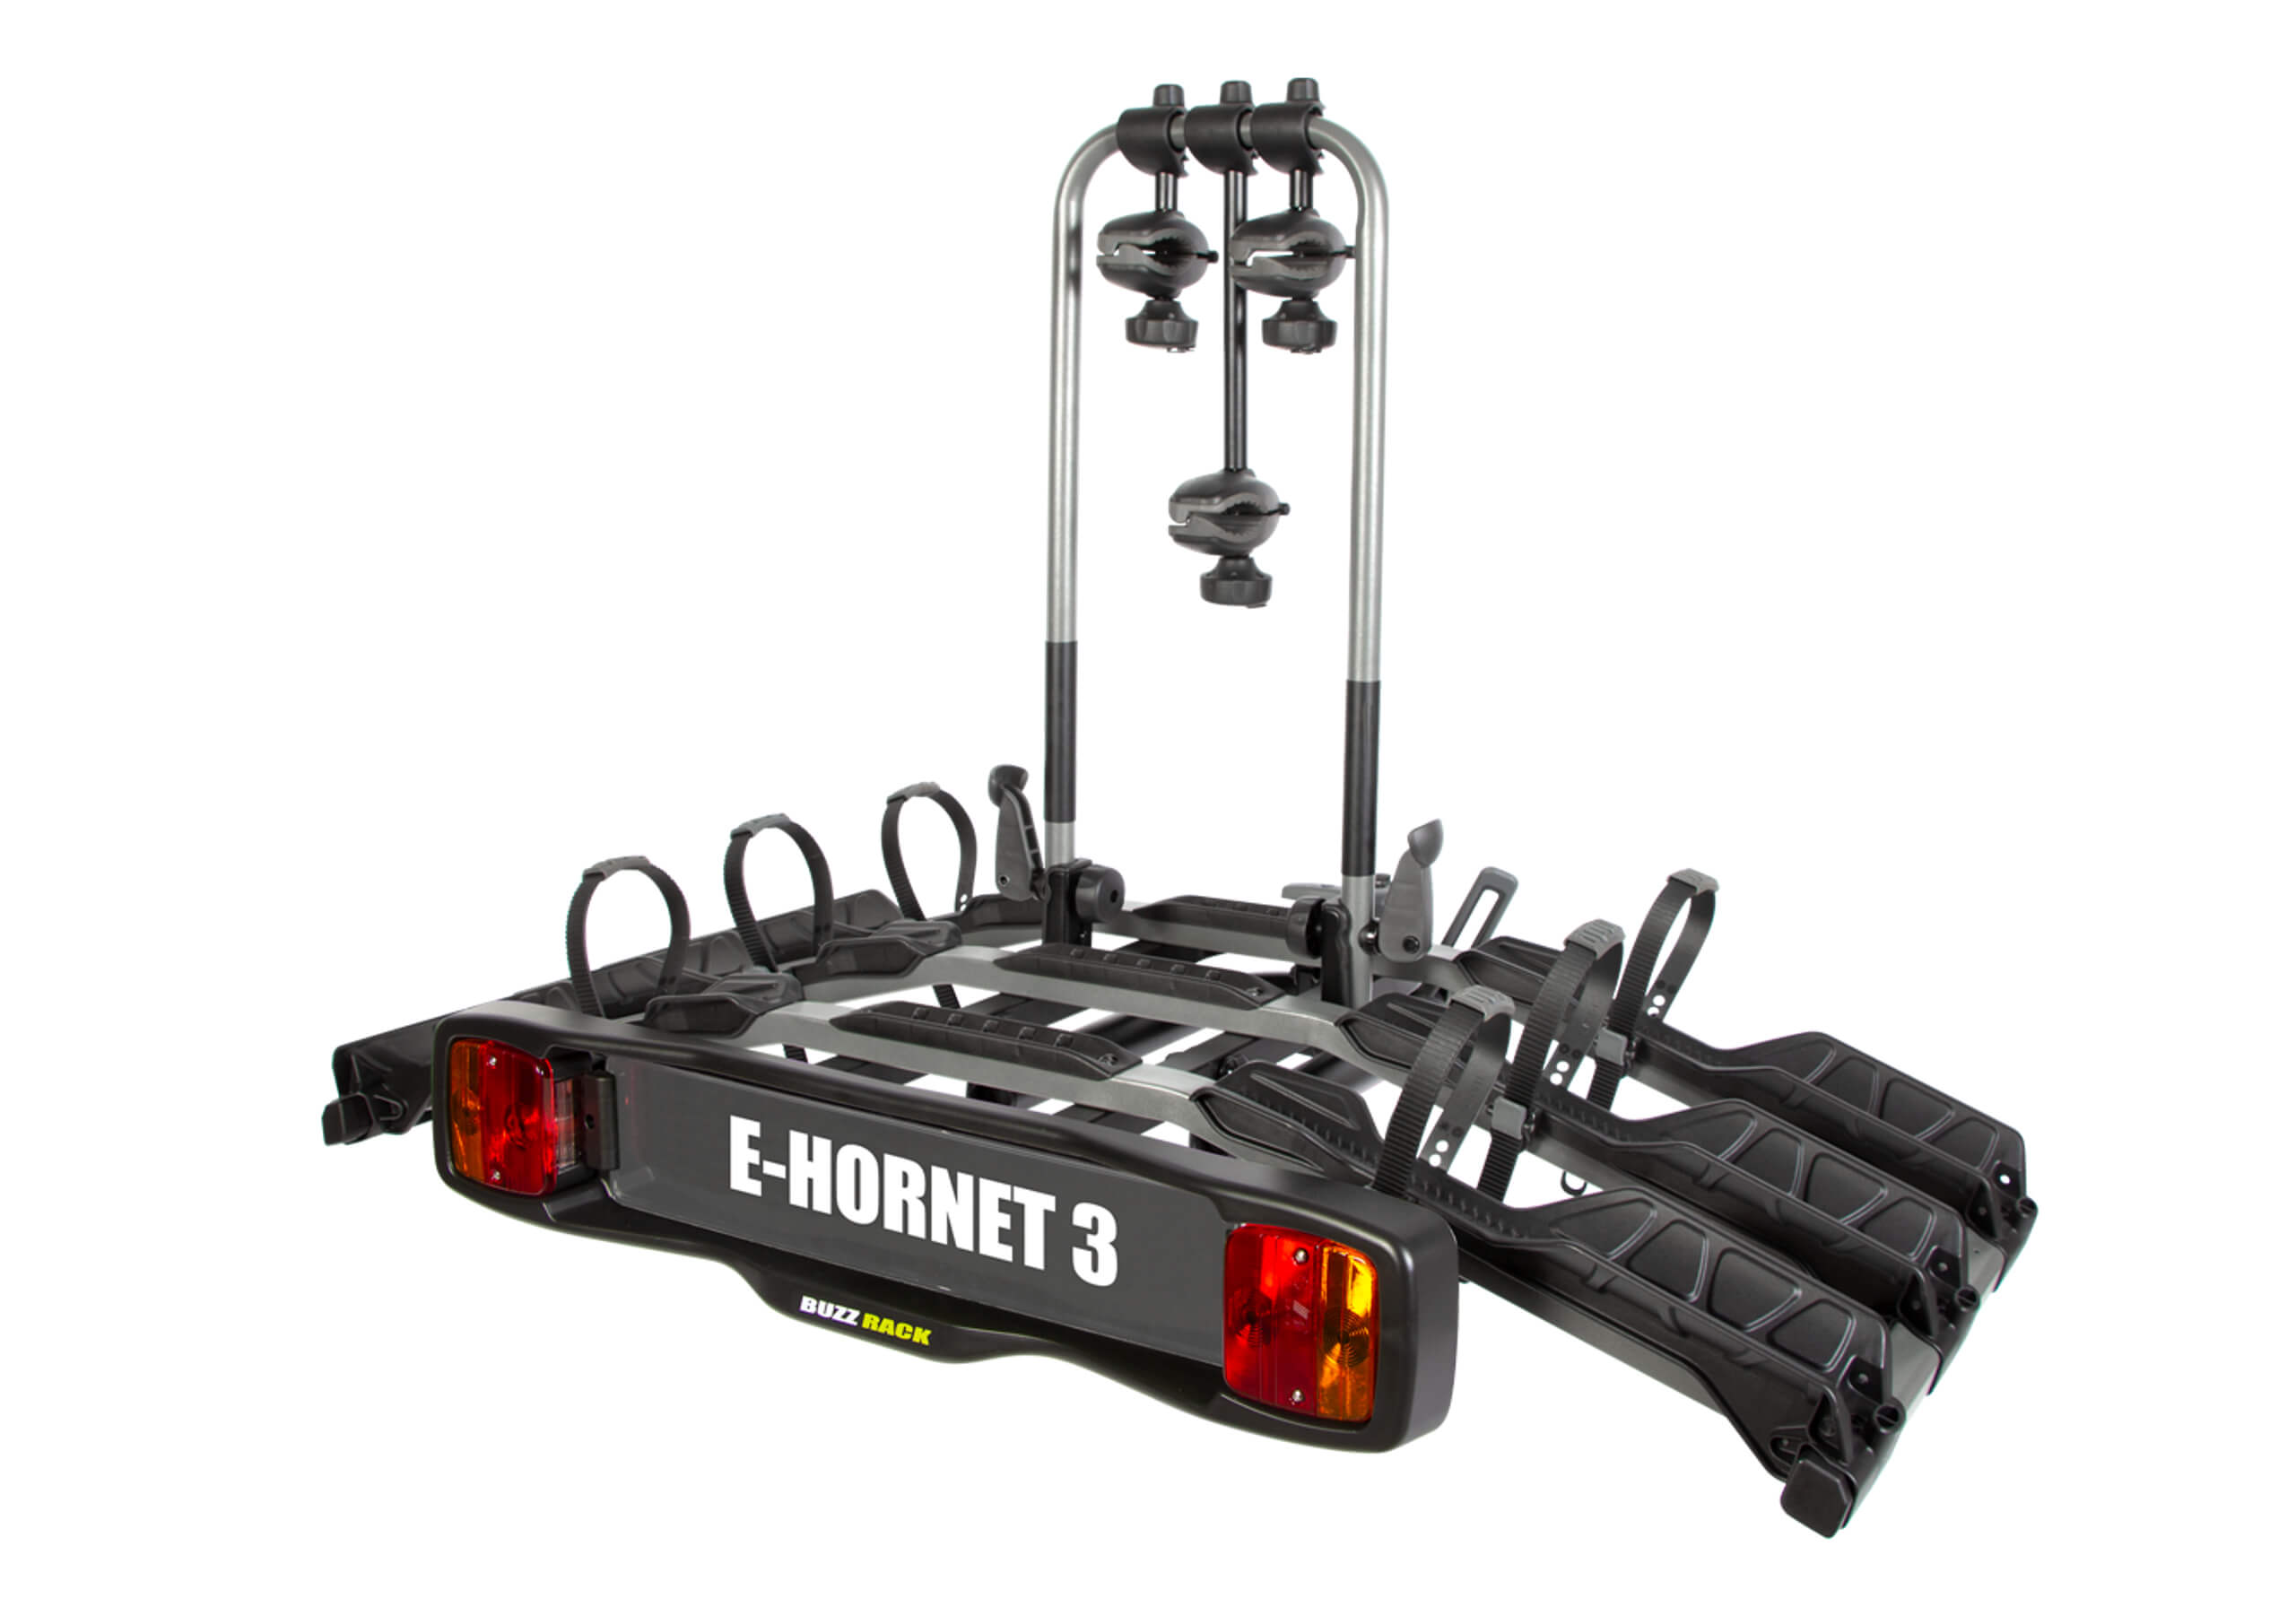 :BUZZ RACK E-Hornet 3 bike tilting e-bike carrier no. BRP403